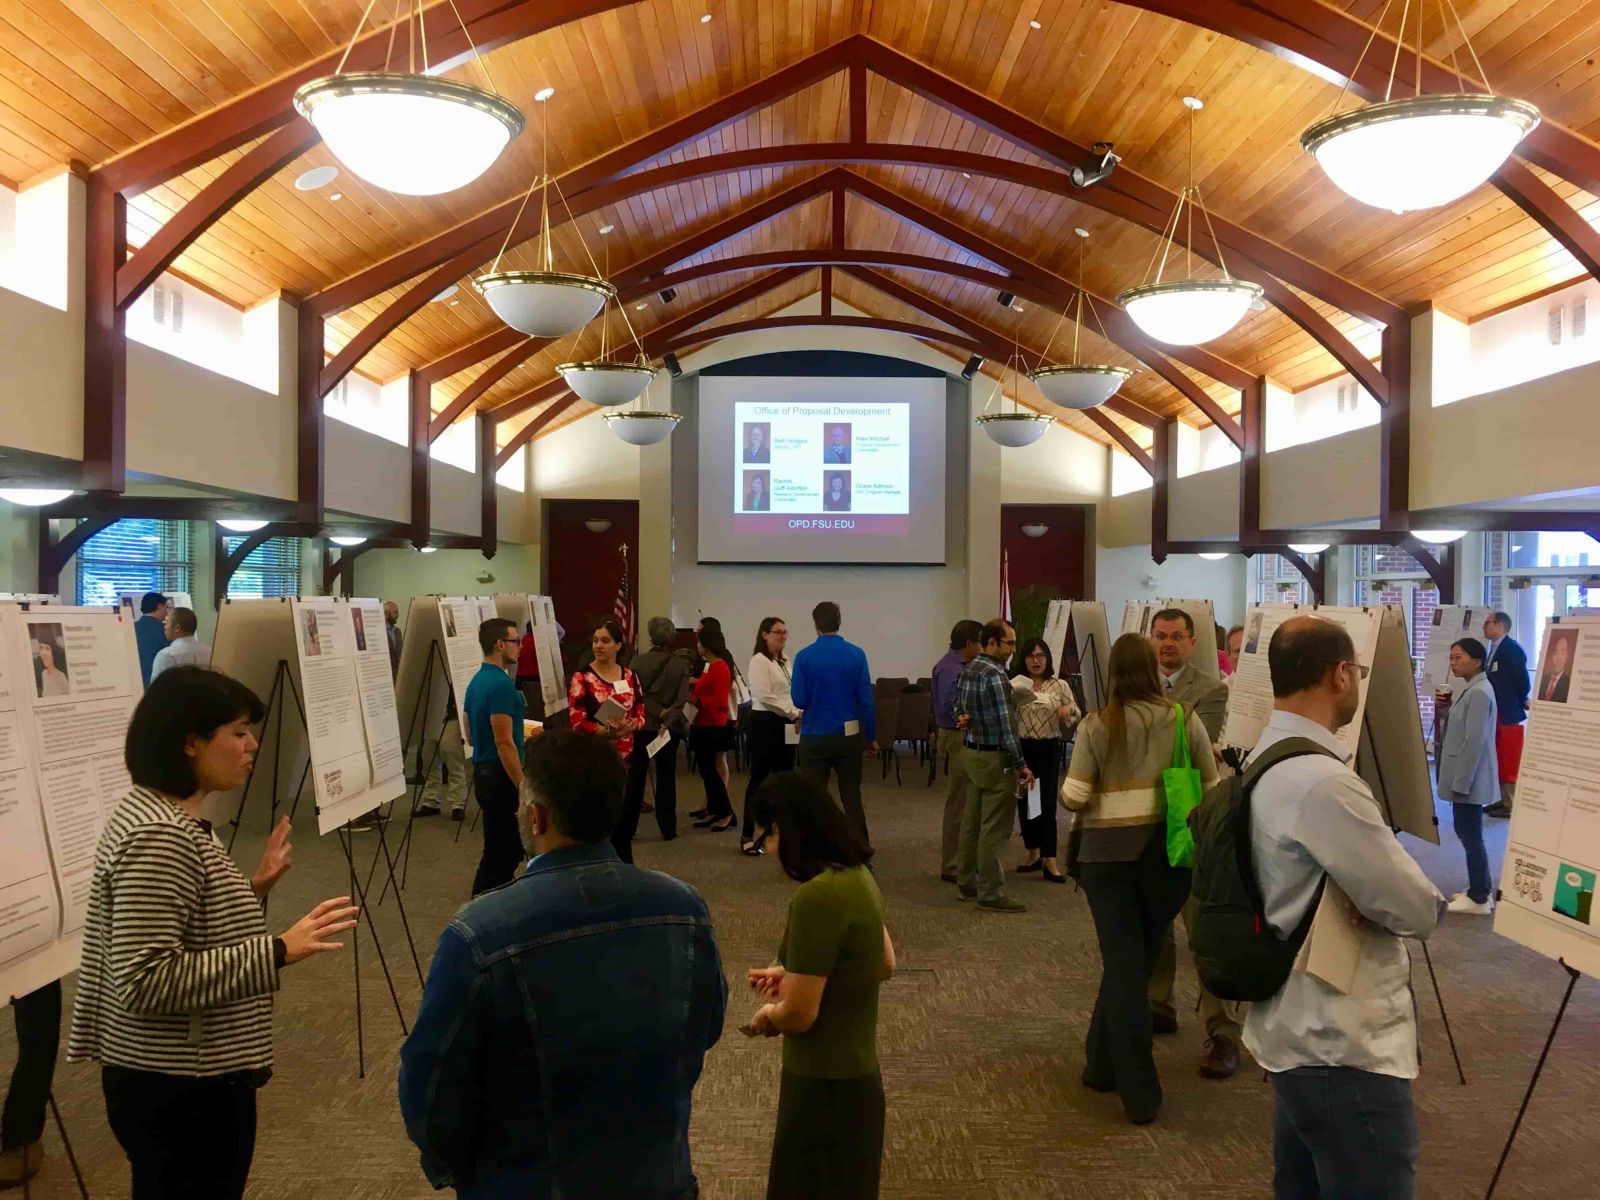 Representatives of almost every FSU college and departments gathered in the FSU Alumni Center to discuss new potential research partnerships addressing the problem of disaster resiliency